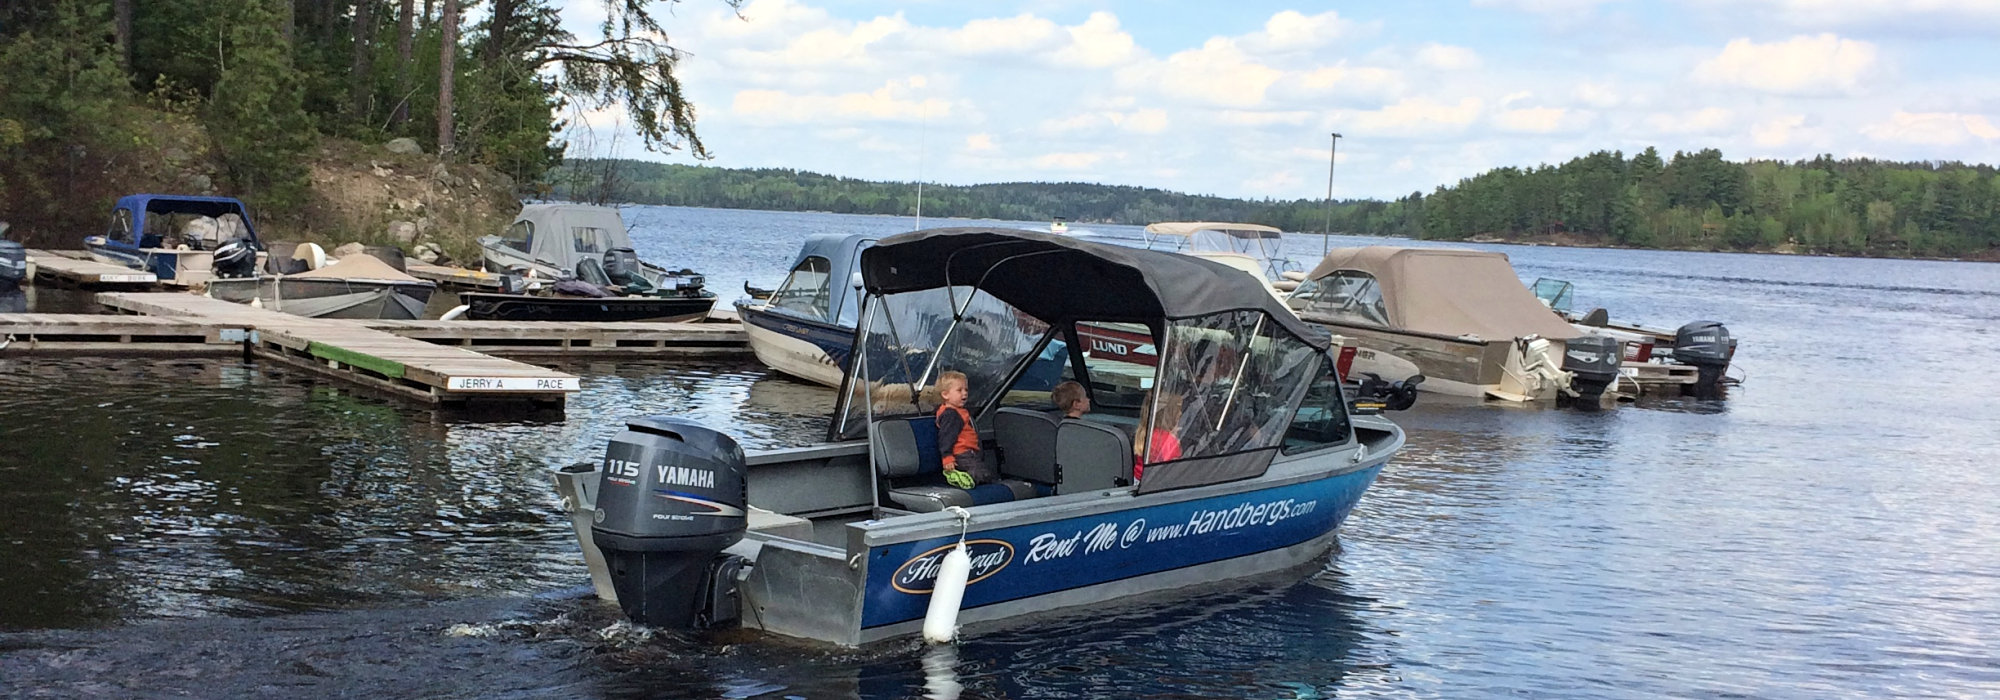 Season Ends Sunday For Rental Boating >> Mn Boat Rentals Crane Lake Boat Rental Pontoon Rental